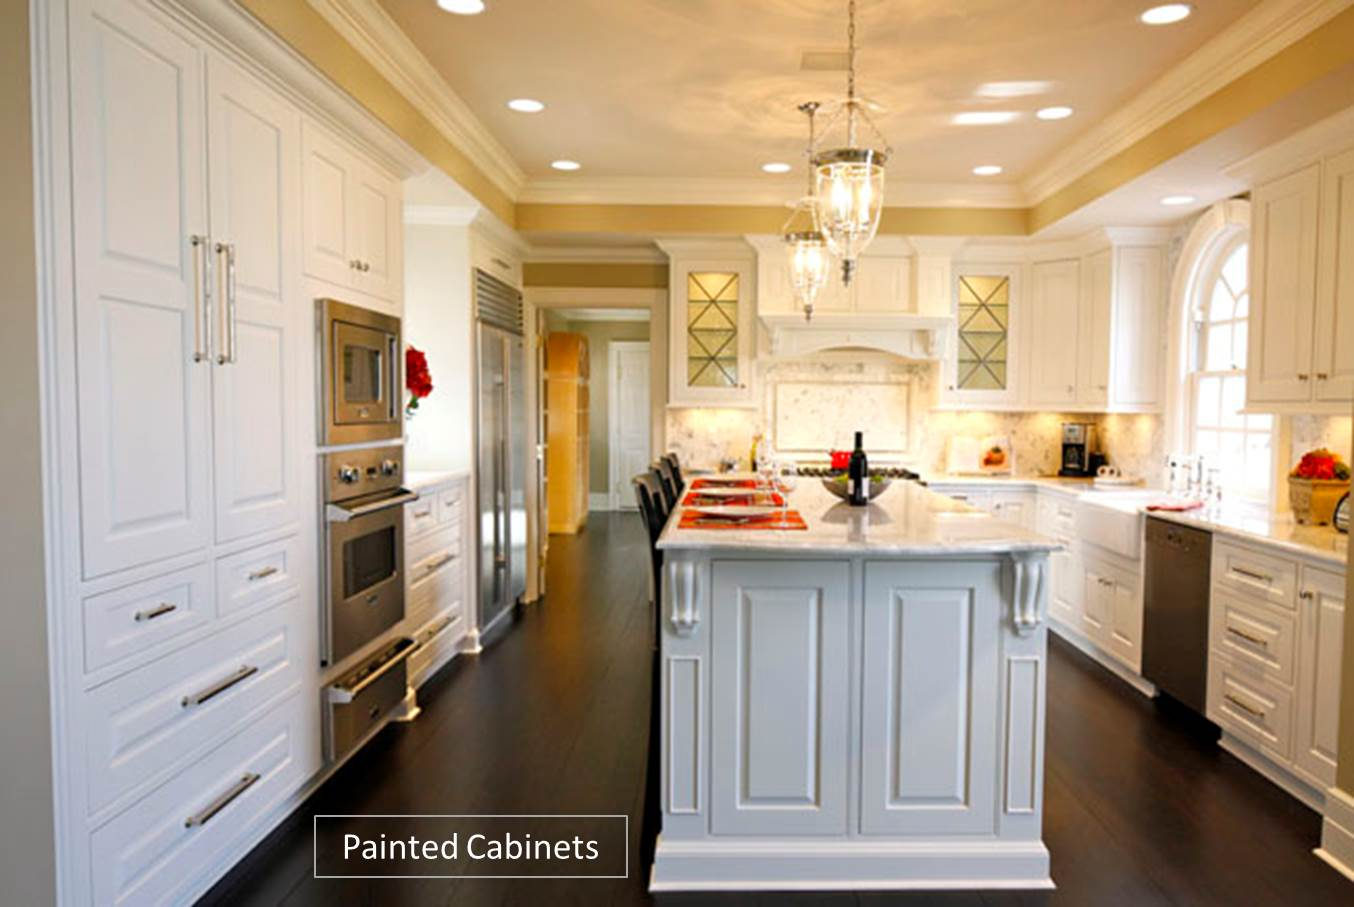 Custom kitchen cabinets painted vs stained for Can you paint over stained kitchen cabinets